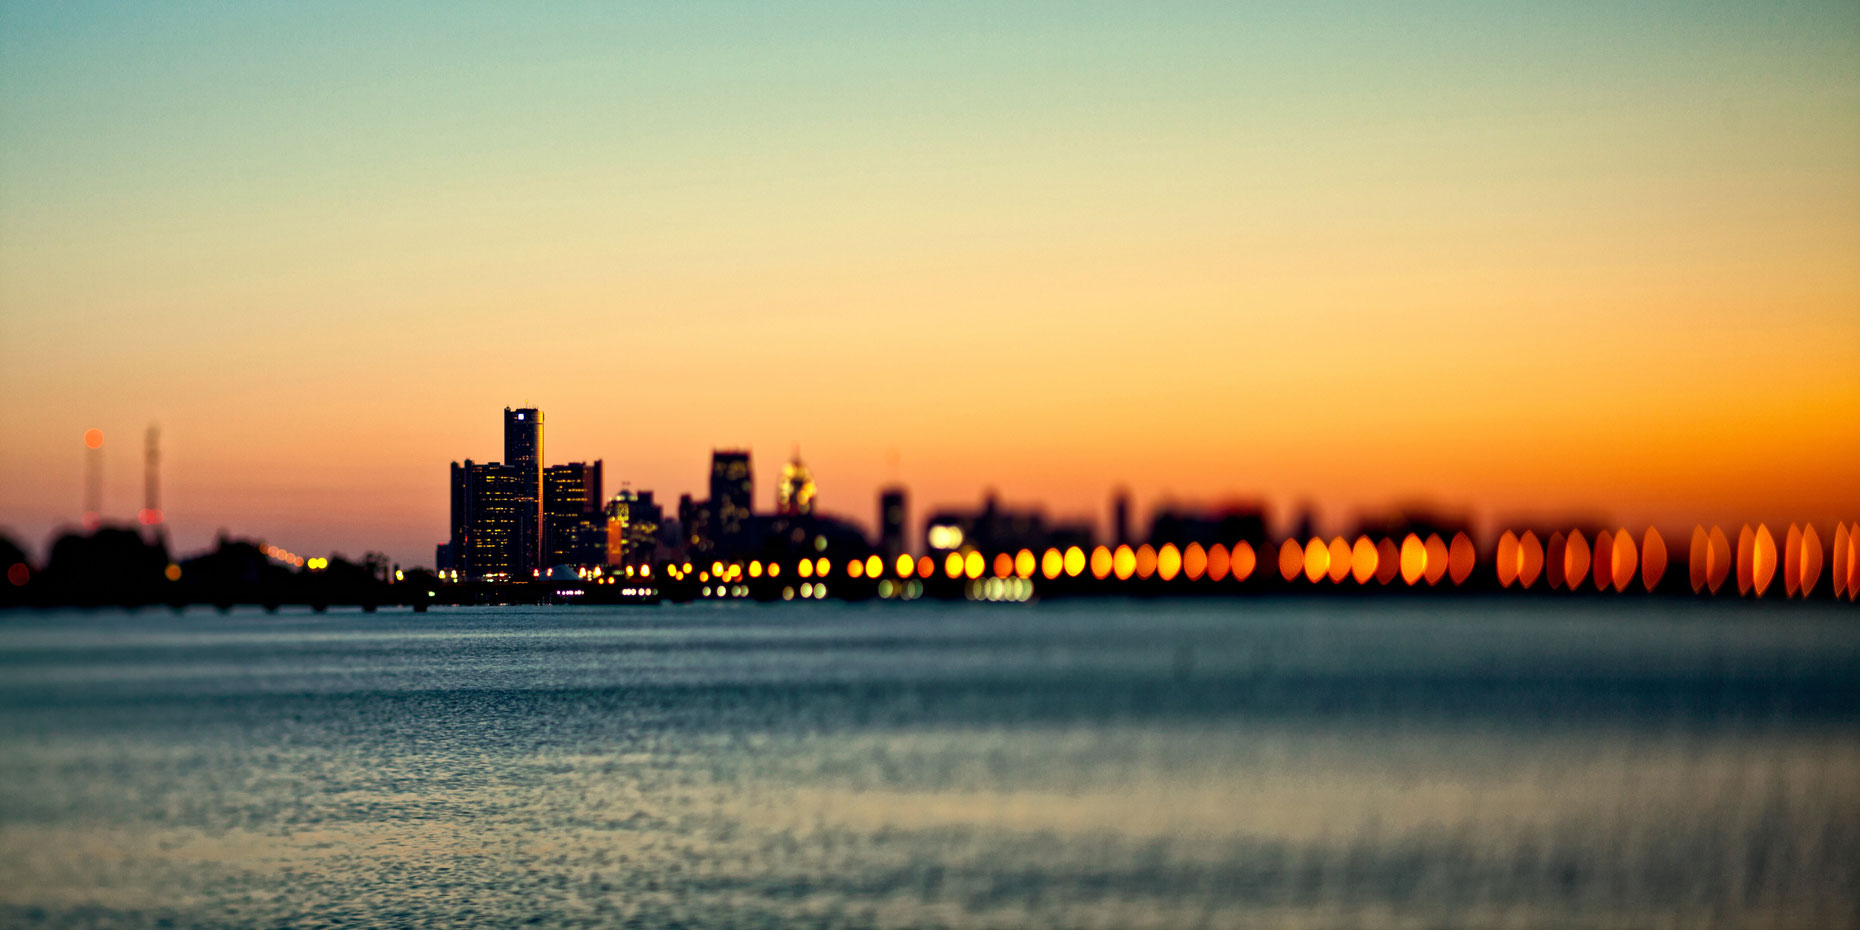 DetroitSkyline-MAIN-copy-Edit-Edit.jpg